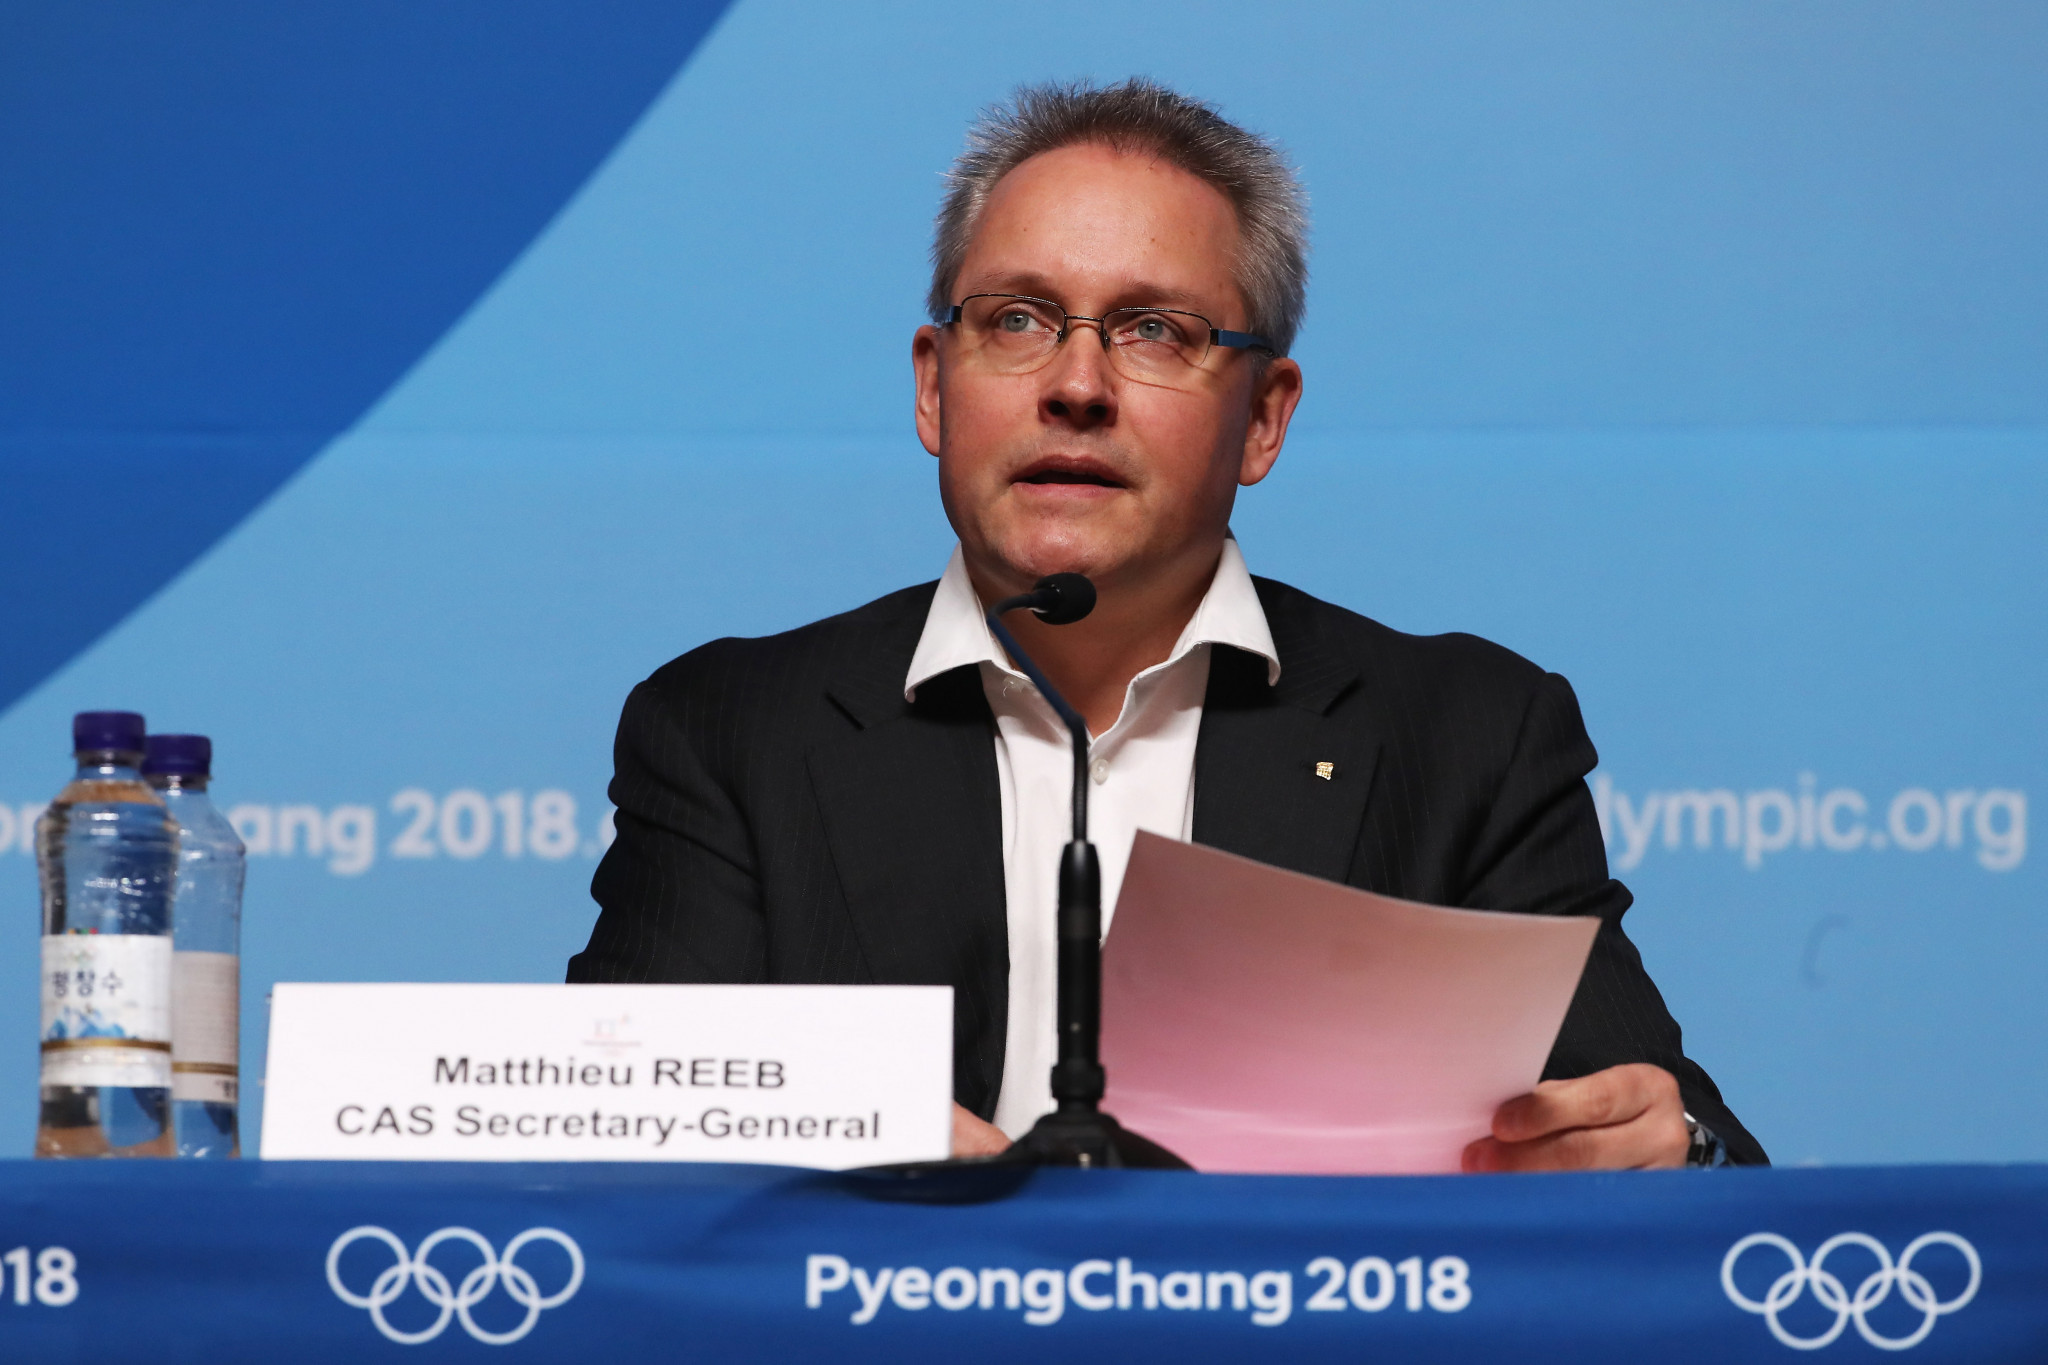 """CAS unable to prove any of the """"factual allegations"""" made by IOC in decision to sanction Russian skier"""